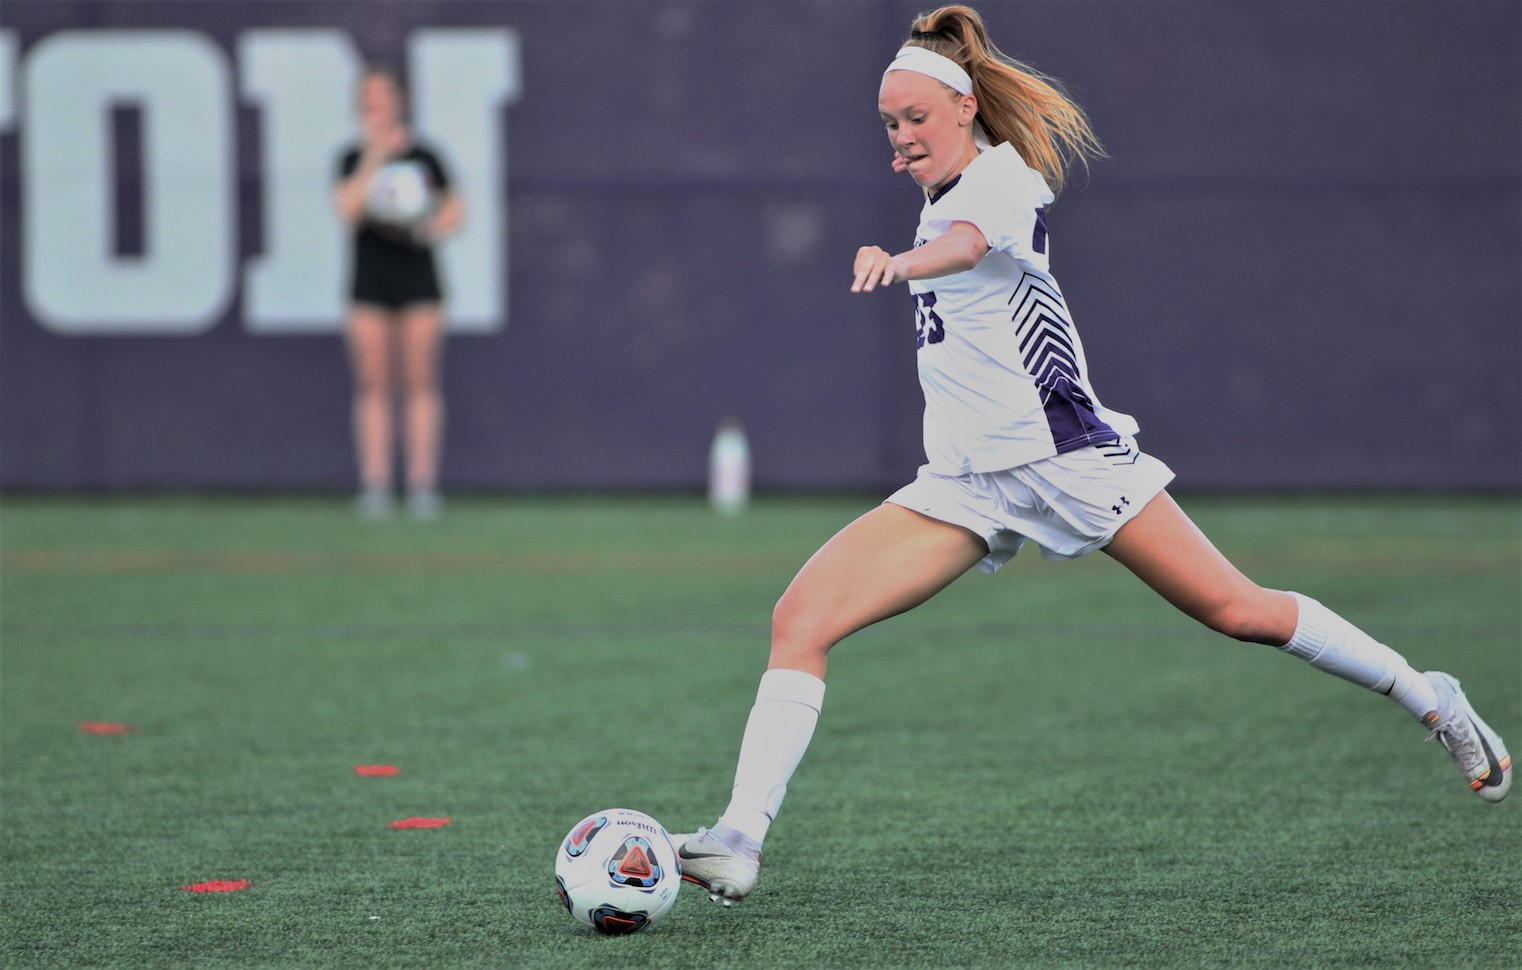 Junior Mazie Stiles took a match-high seven shots on the evening at Penn State Berks on Wednesday, but she was unable to find the back of the net in an eventual 1-0 loss for the Royals on the road. © Photo by Timothy R. Dougherty / doubleeaglephotography.com